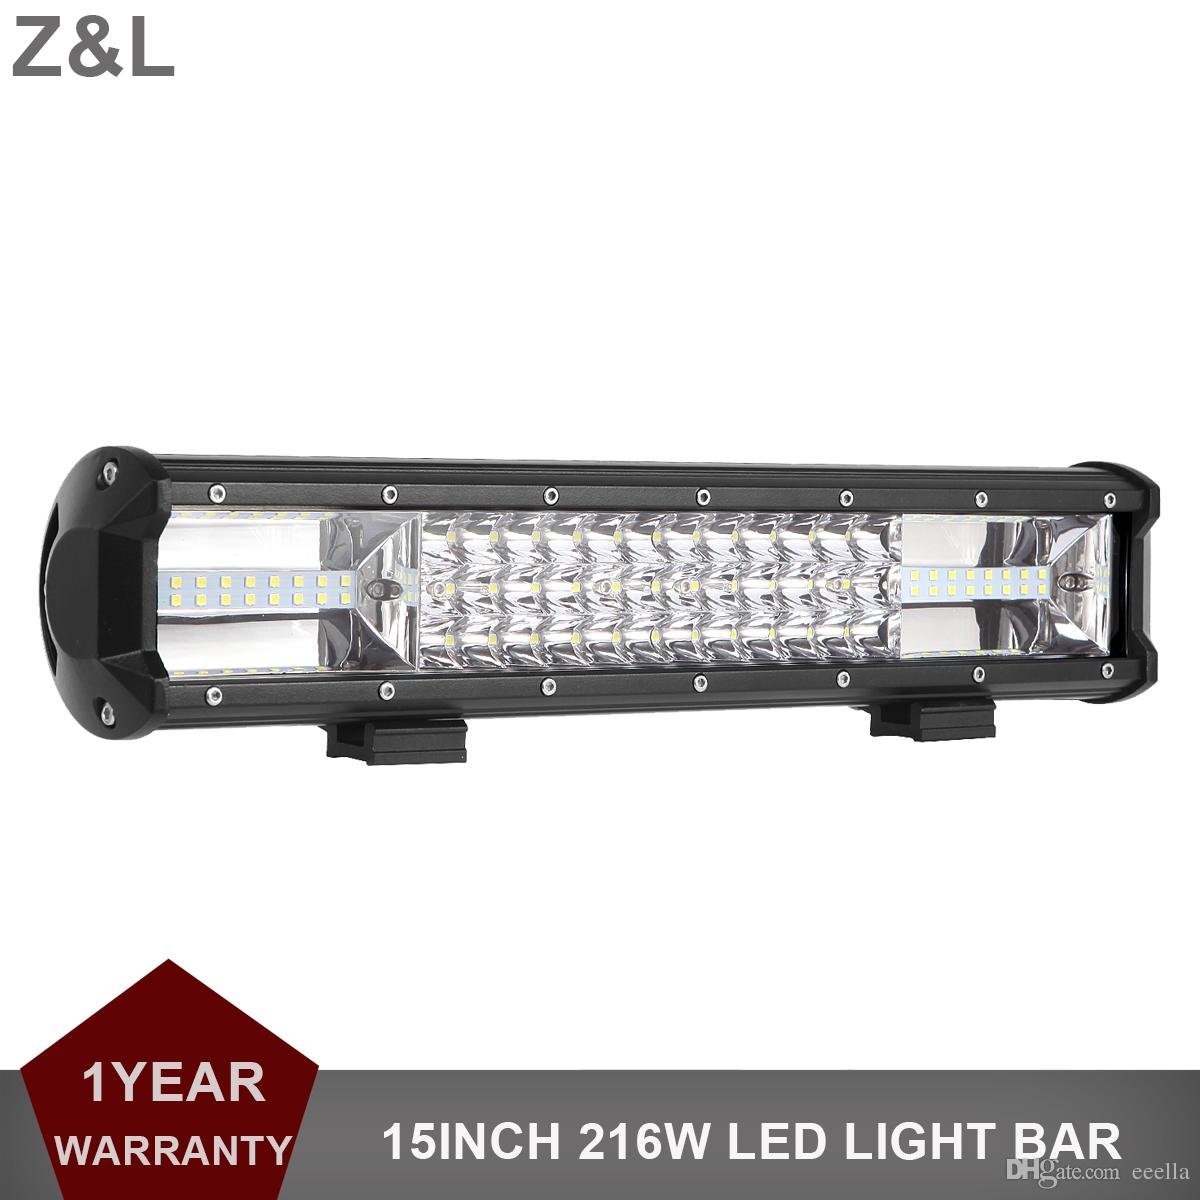 15 Inch Led Light Bar 216w Triple Row 12v 24v Offroad Driving Work Lamp Car Suv Rzr Atv 4x4 Wagon Pickup Truck Trailer Rechargeable Work Lights Led